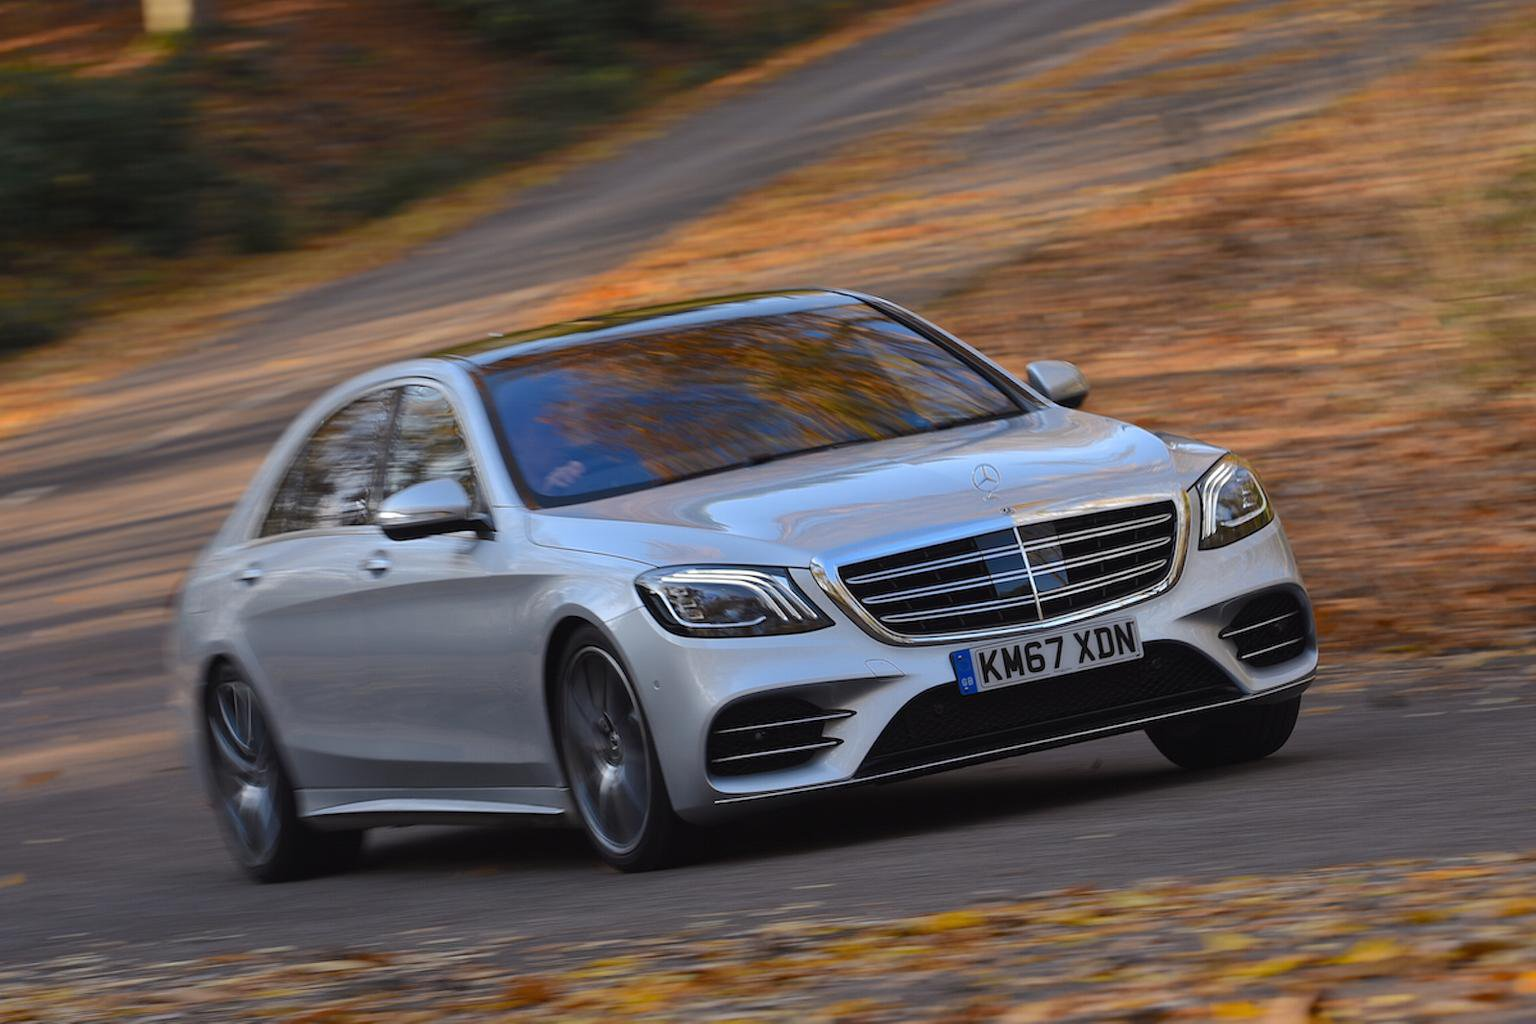 2017 Mercedes-Benz S-Class S500 review - verdict